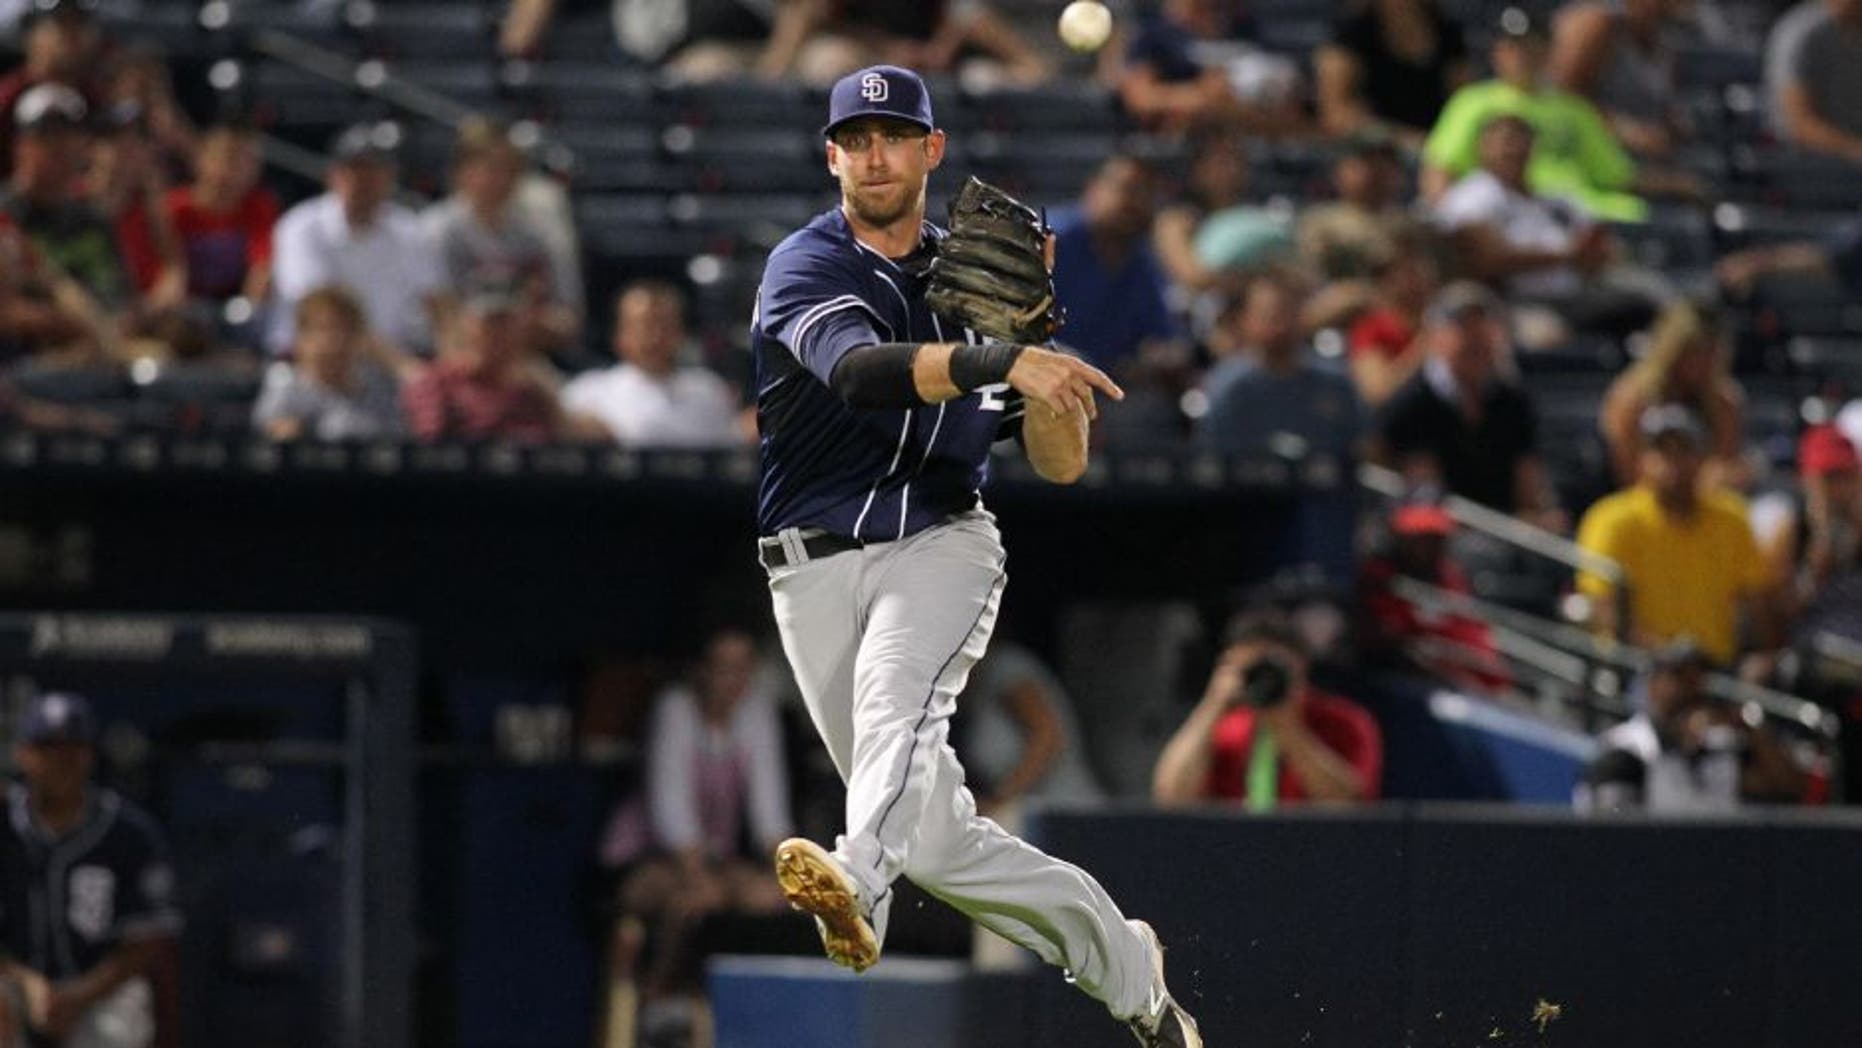 San Diego Padres third baseman Will Middlebrooks (11) throws a runner out at first base against the Atlanta Braves in the tenth inning at Turner Field.